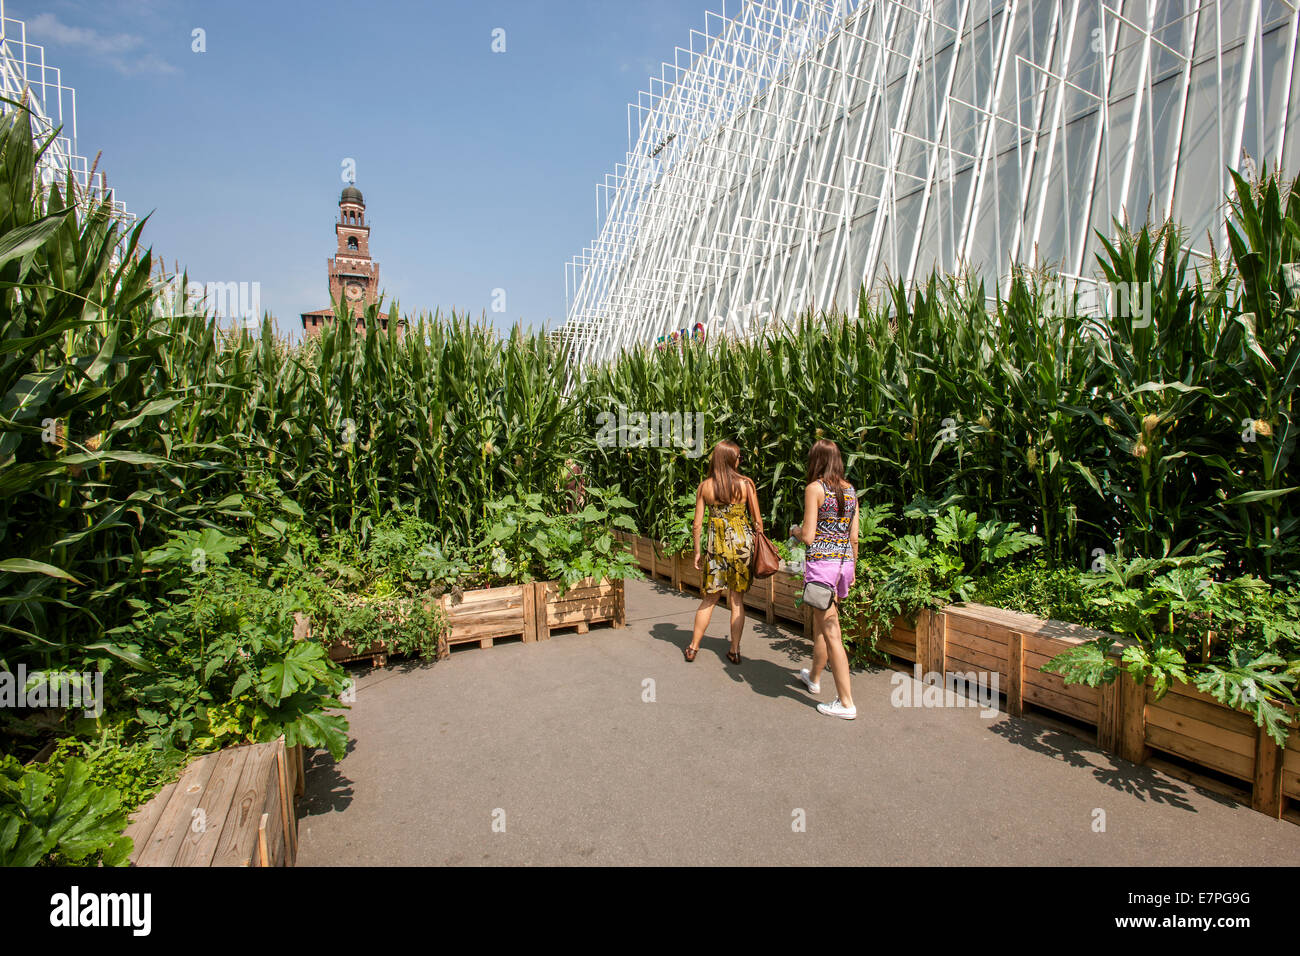 Milan, Expo 2015, EXPOGATE, Fair Universal, Sforzesco castle, city, gate, infopoint, signpost, corn flower beds, - Stock Image